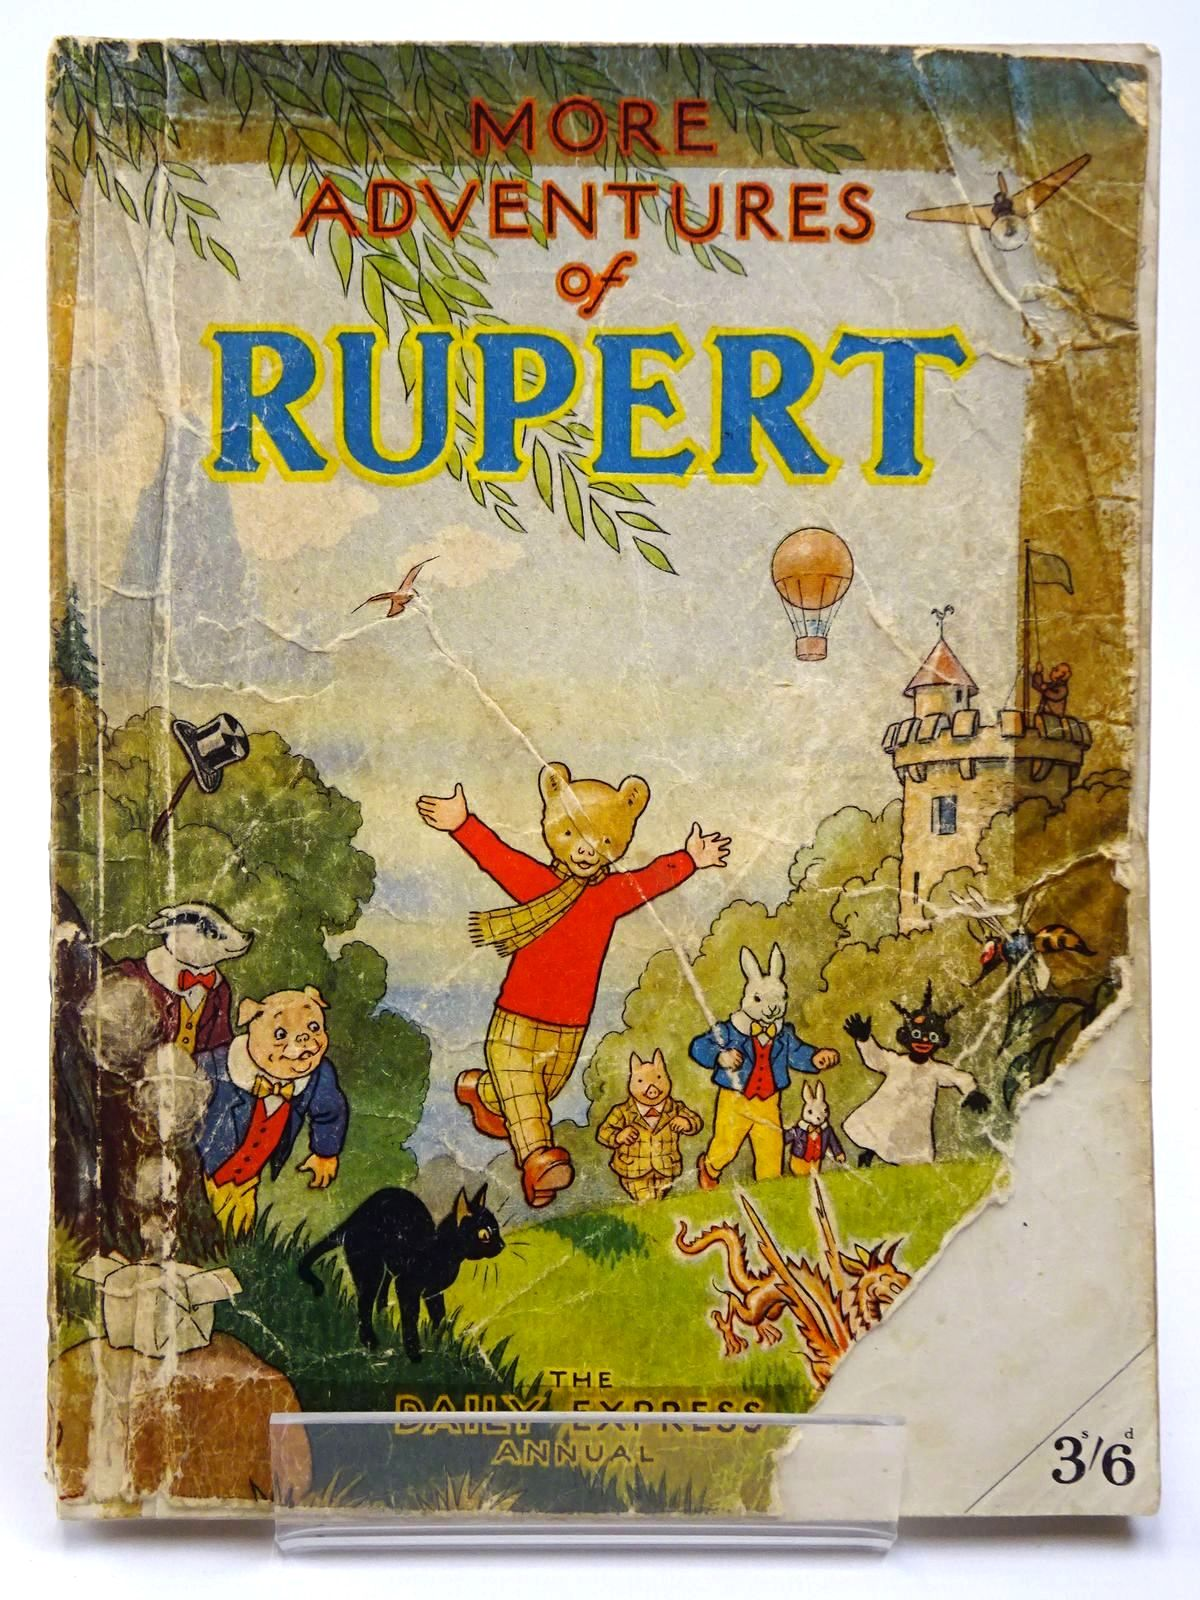 Photo of RUPERT ANNUAL 1947 - MORE ADVENTURES OF RUPERT written by Bestall, Alfred illustrated by Bestall, Alfred published by Daily Express (STOCK CODE: 2129638)  for sale by Stella & Rose's Books